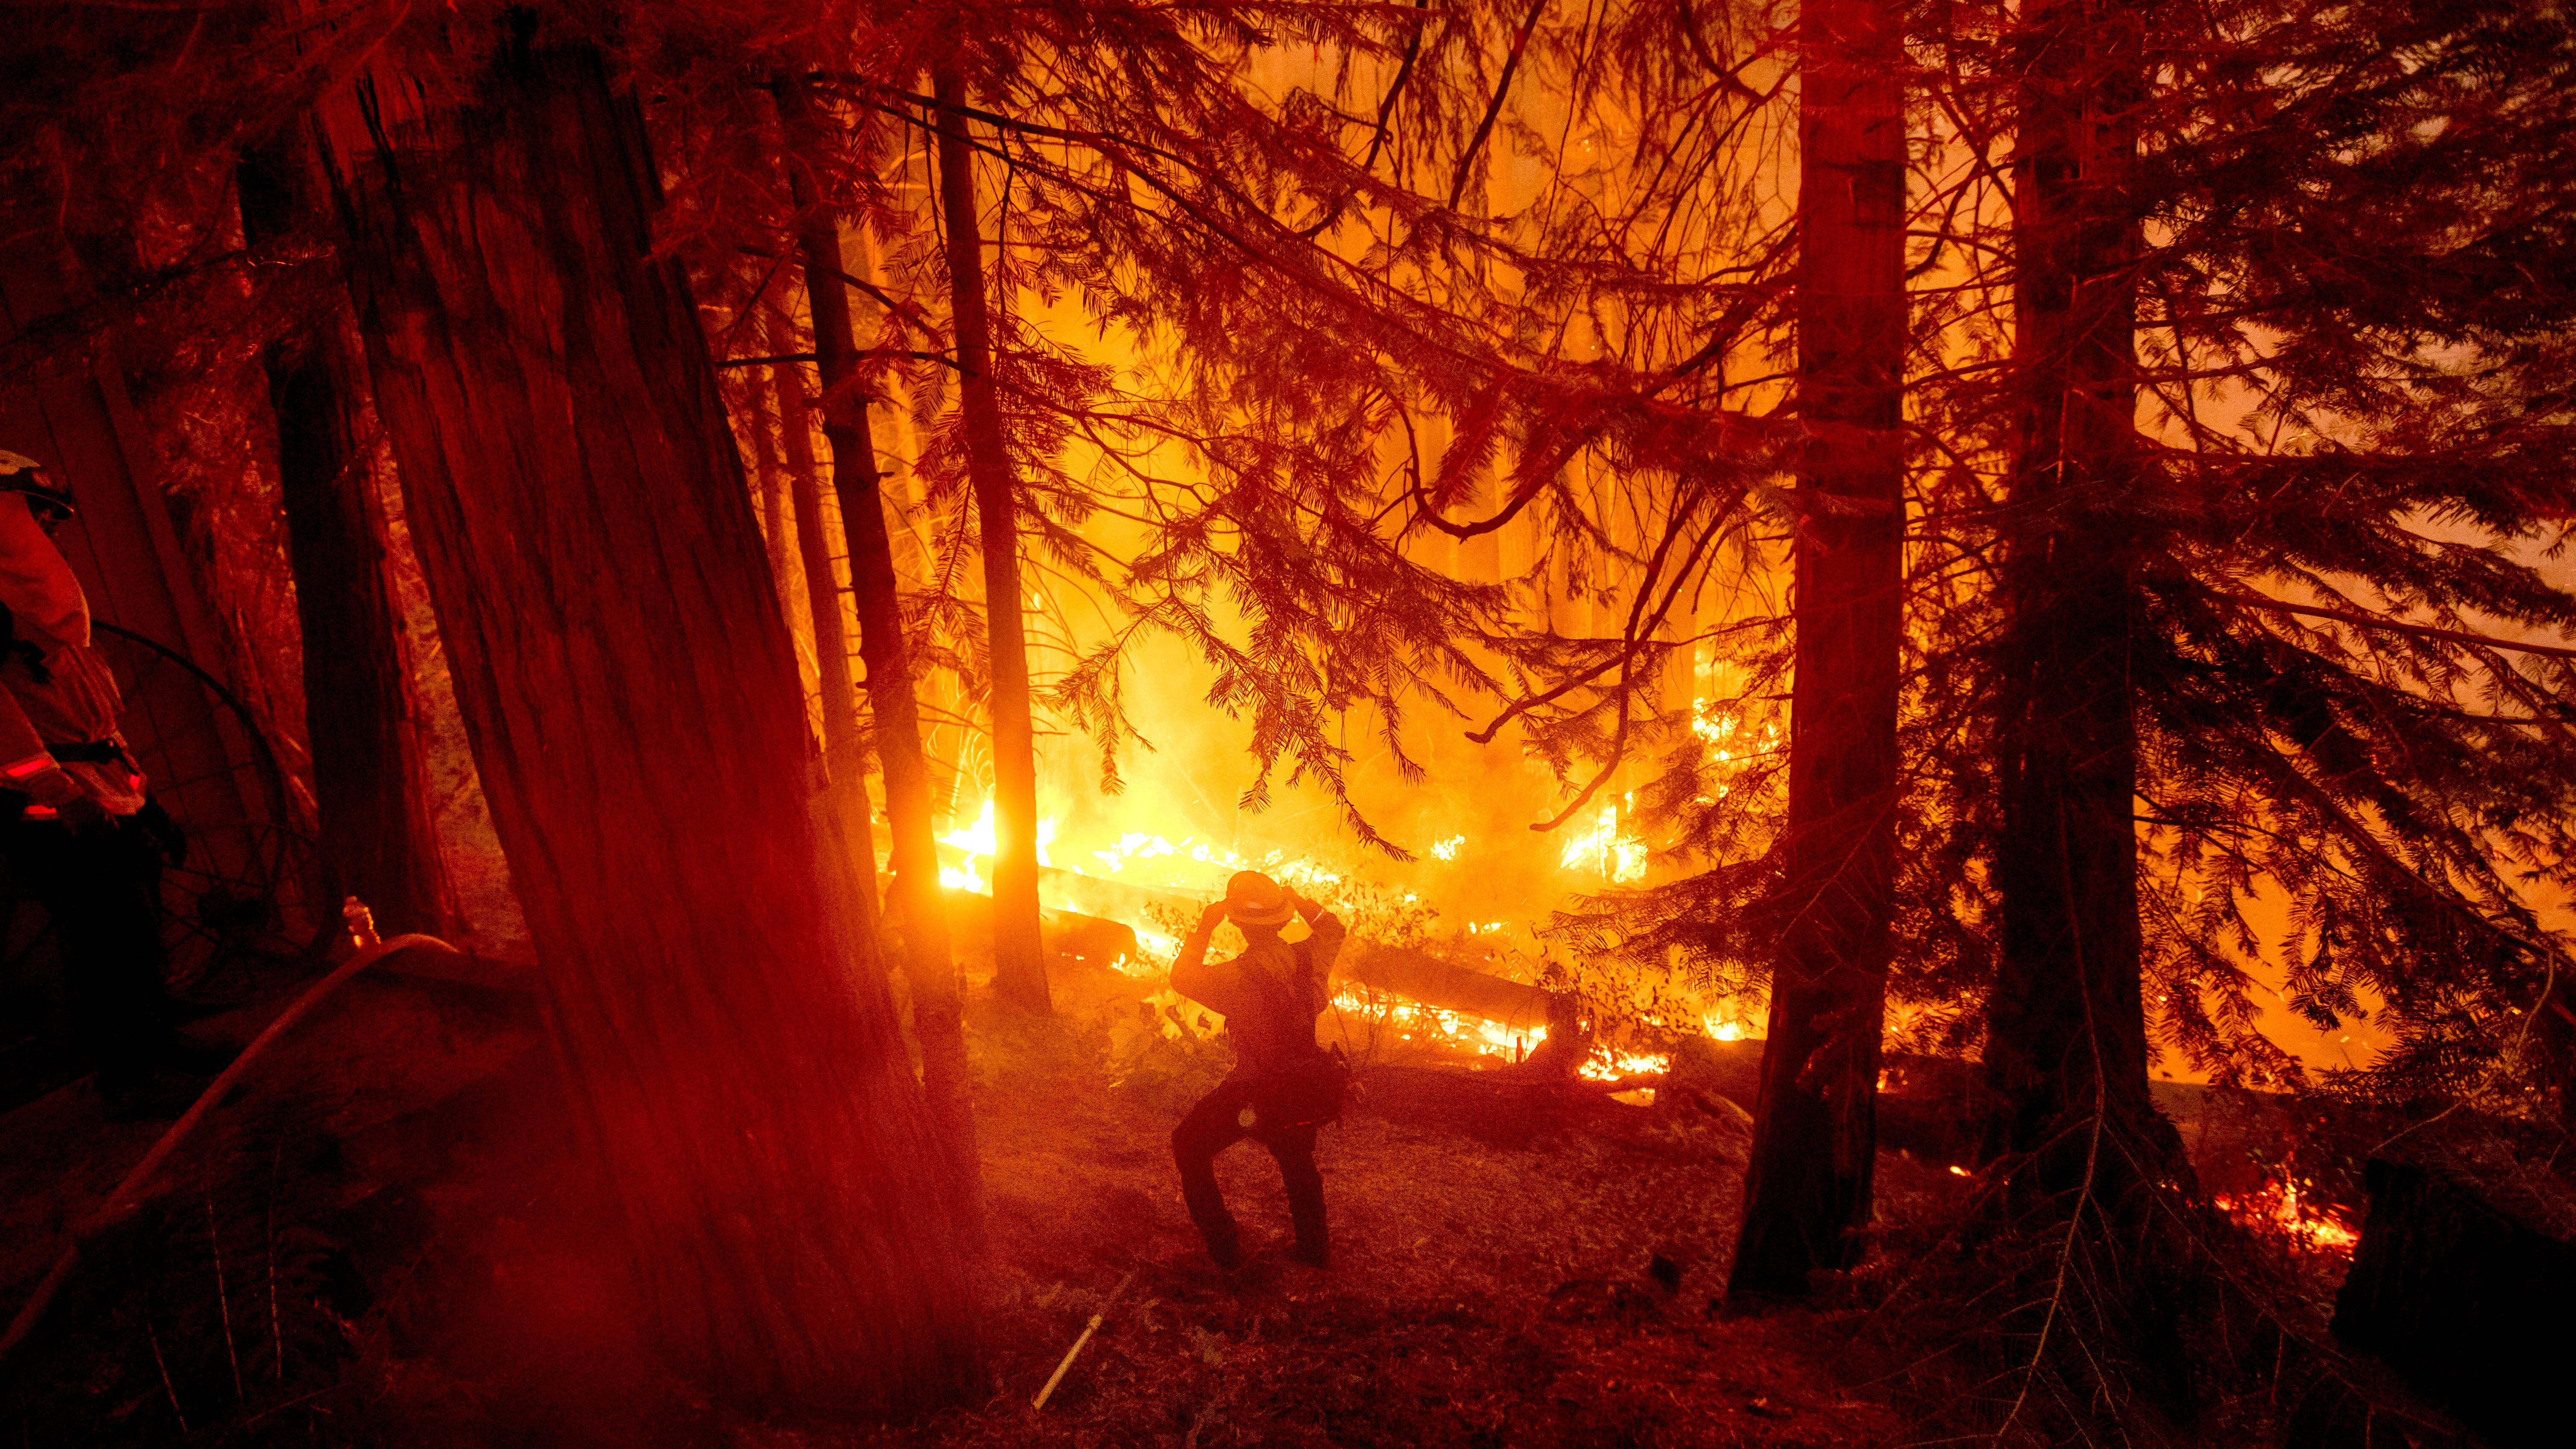 Canada and Mexico are fighting wildfires, too